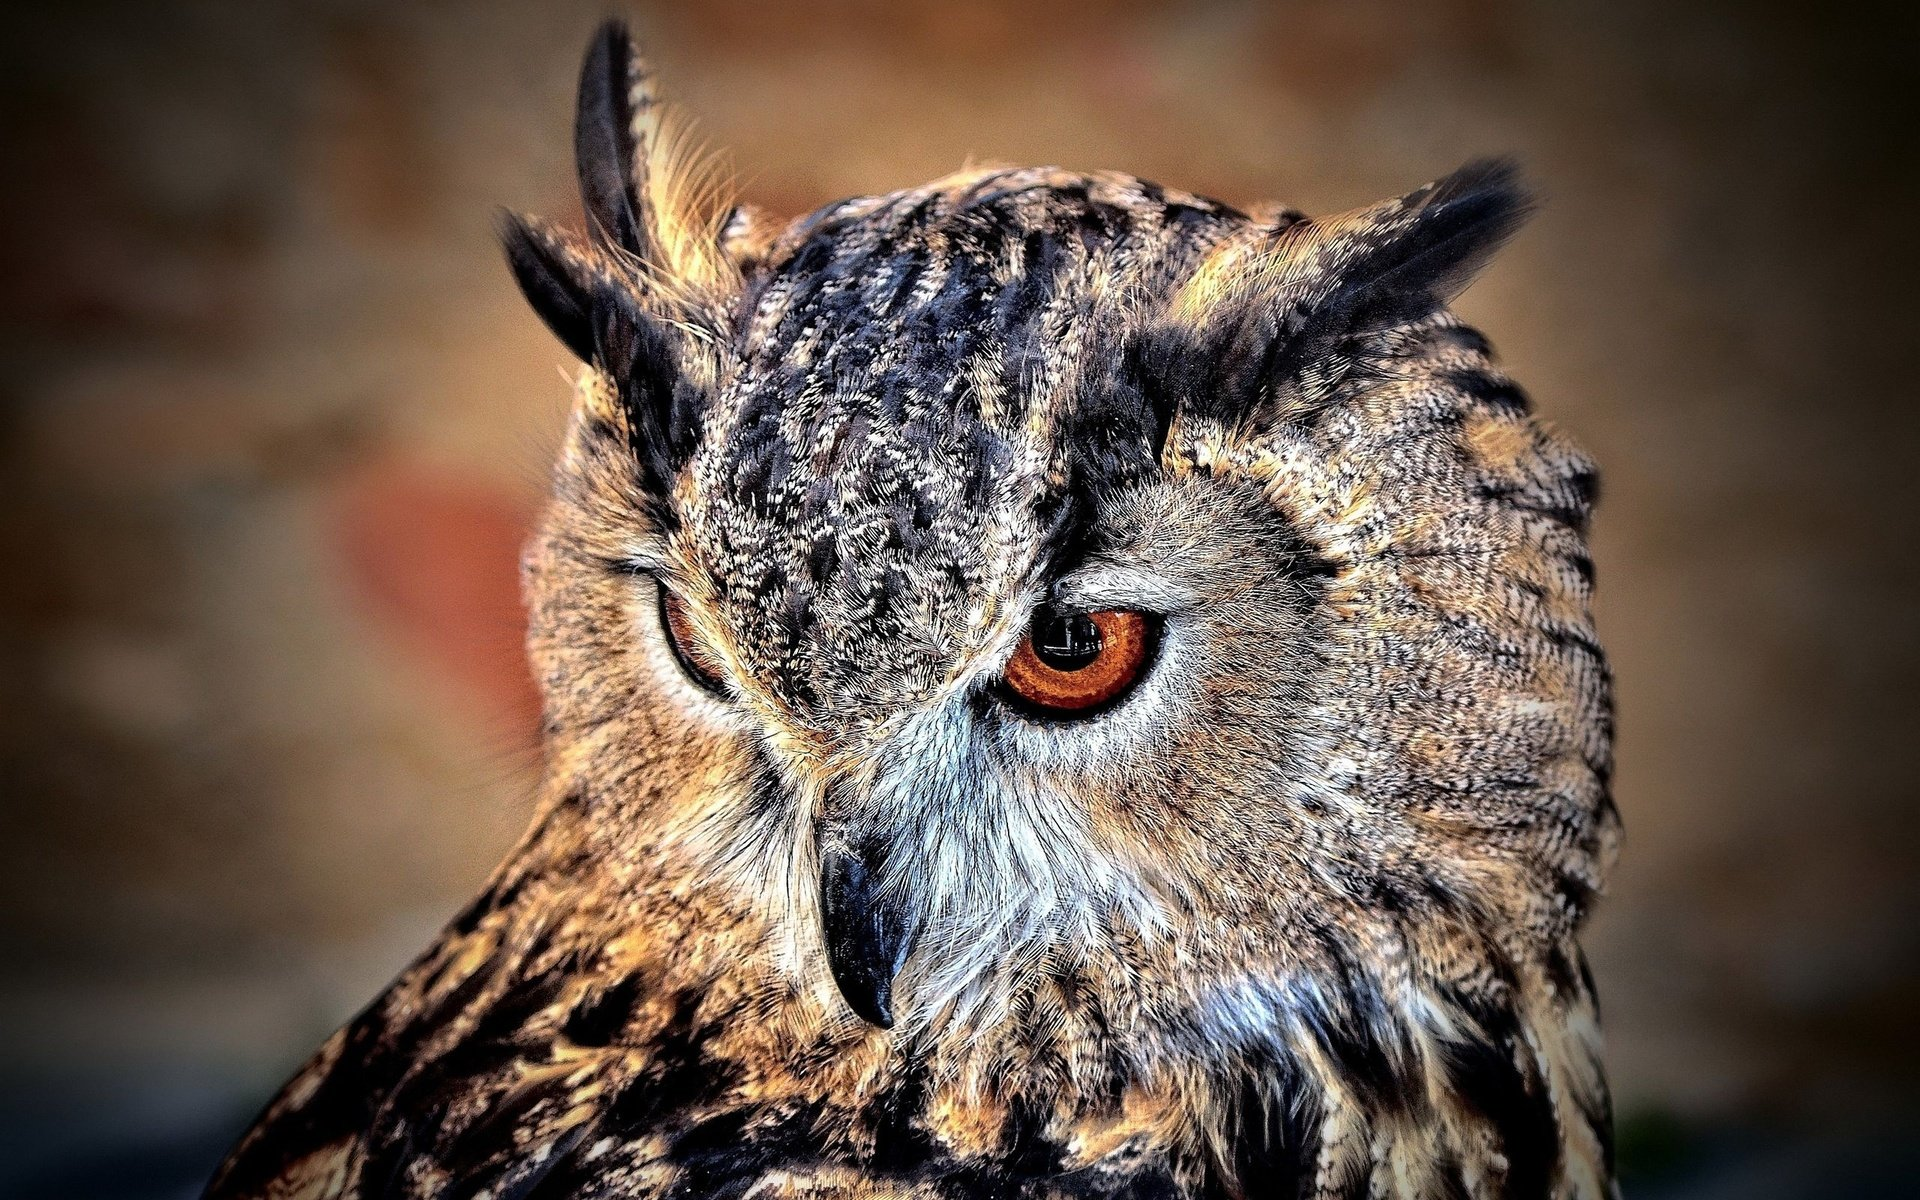 Download hd 1920x1200 Owl PC background ID:237143 for free